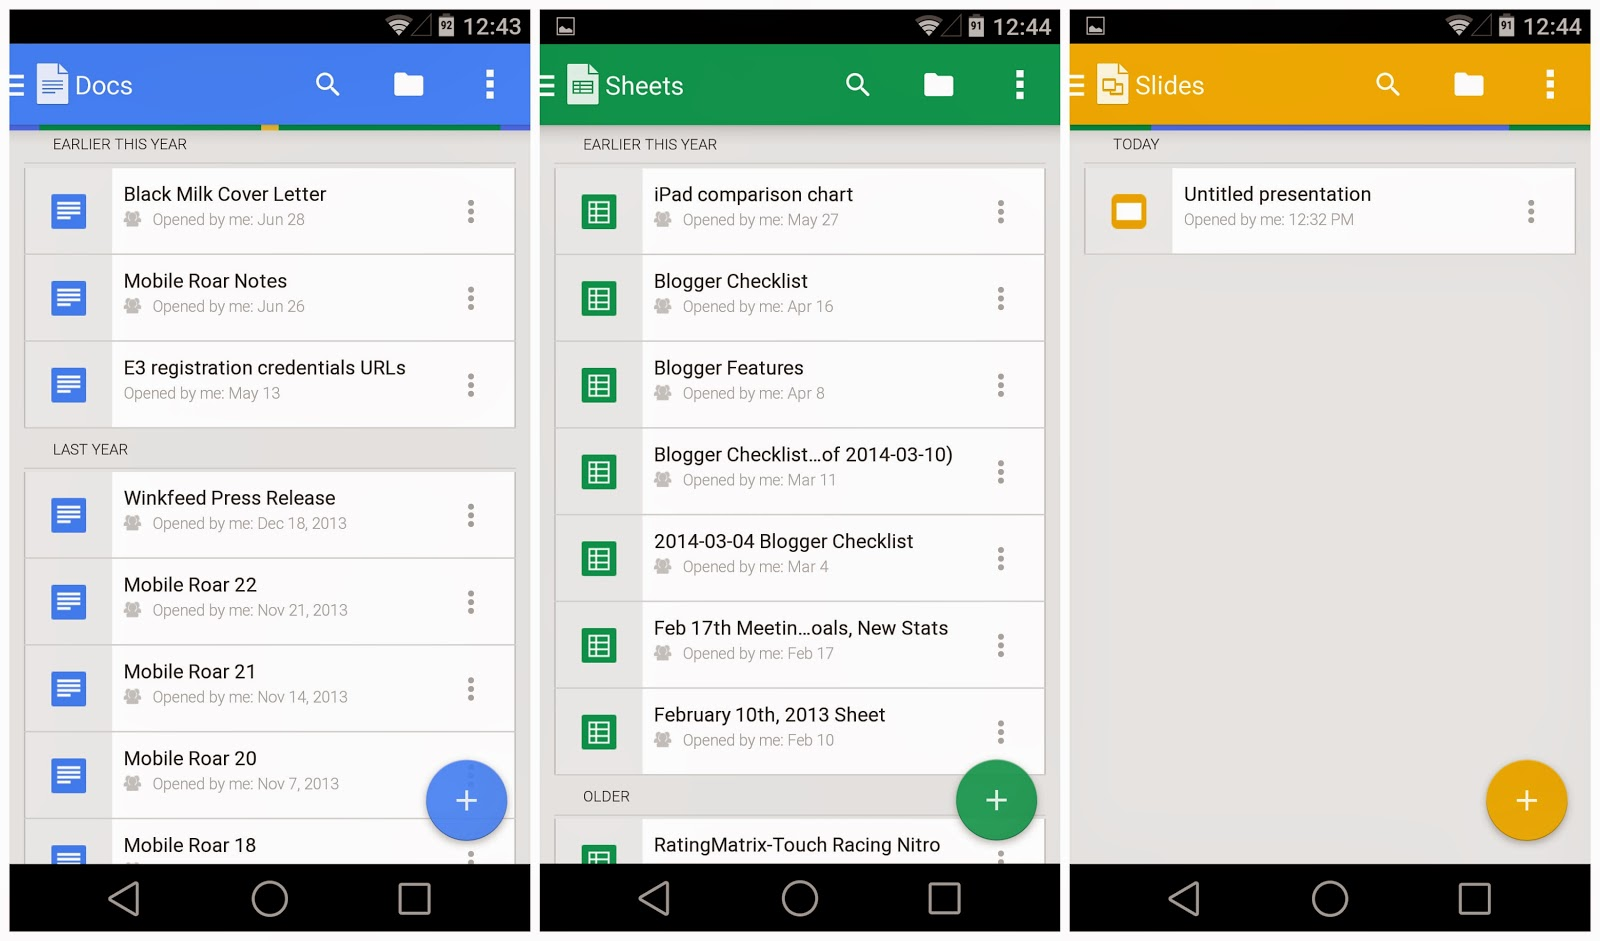 APK] Google Updates Docs, Sheets and Slides with New